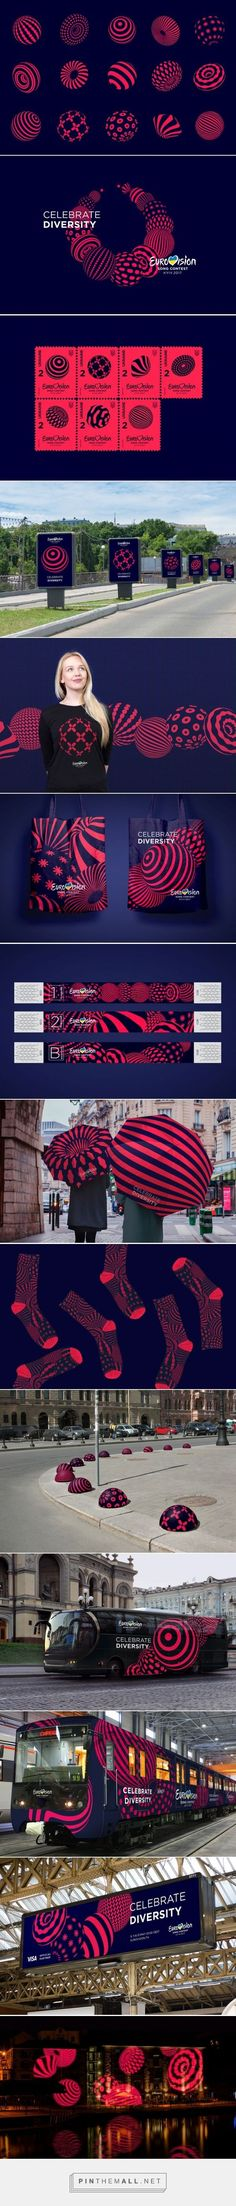 Brand New: New Logo and Identity for Eurovision Song Contest 2017 by banda.agency and Republique... - a grouped images picture - Pin Them All. If you're a user experience professional, listen to The UX Blog Podcast on iTunes.